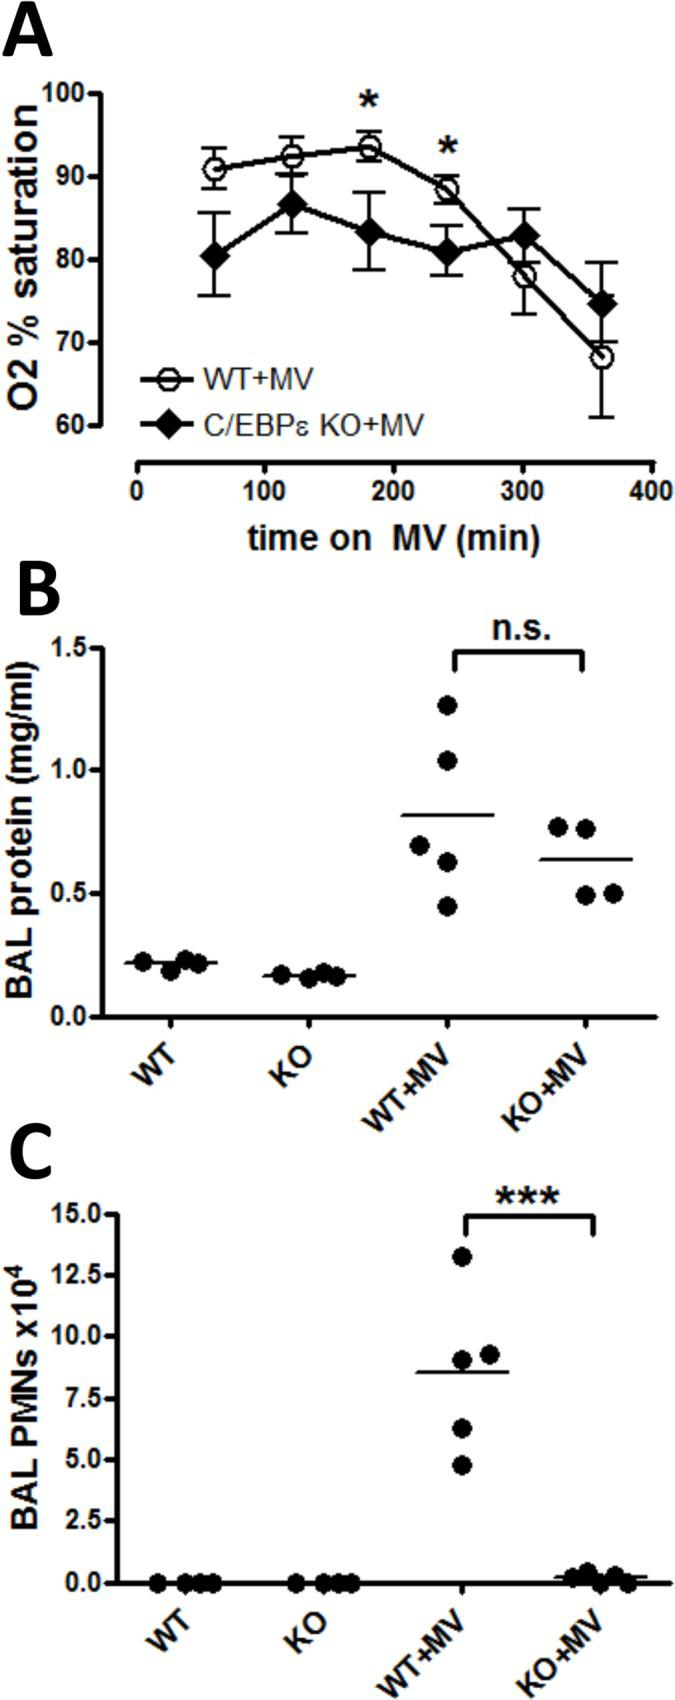 C/EBPε-deficient mice have decreased PMNs but develop equivalent hypoxemia and edema with VILI. (A) Wild-type (WT+MV, open circles) and Cebpe knockout ( Cebpe +MV, closed diamonds) mice were anesthetized and placed on mechanical ventilation (MV) with tidal volumes of 20 ml/kg and zero PEEP for a total of 6 hours. Oxygen saturation was measured each hour for six hours. n = 5/group. (B) Wild type and C/EBPε-deficient mice were anesthetized and placed on MV as described in (A) (WT+MV, +MV); control mice were not anesthetized or mechanically ventilated (WT, KO). All mice were euthanized at the end of 6 hours mechanical ventilation or spontaneous breathing (control mice). Bronchoalveolar lavage (BAL) fluid was assayed for: (B) protein concentration; and (C) neutrophils (PMNs). n = 4 /group (non-ventilated controls) and 5/group (mechanical ventilation). Significance is indicated for comparisons between WT+MV and Cebpe KO+MV groups in all graphs. * p